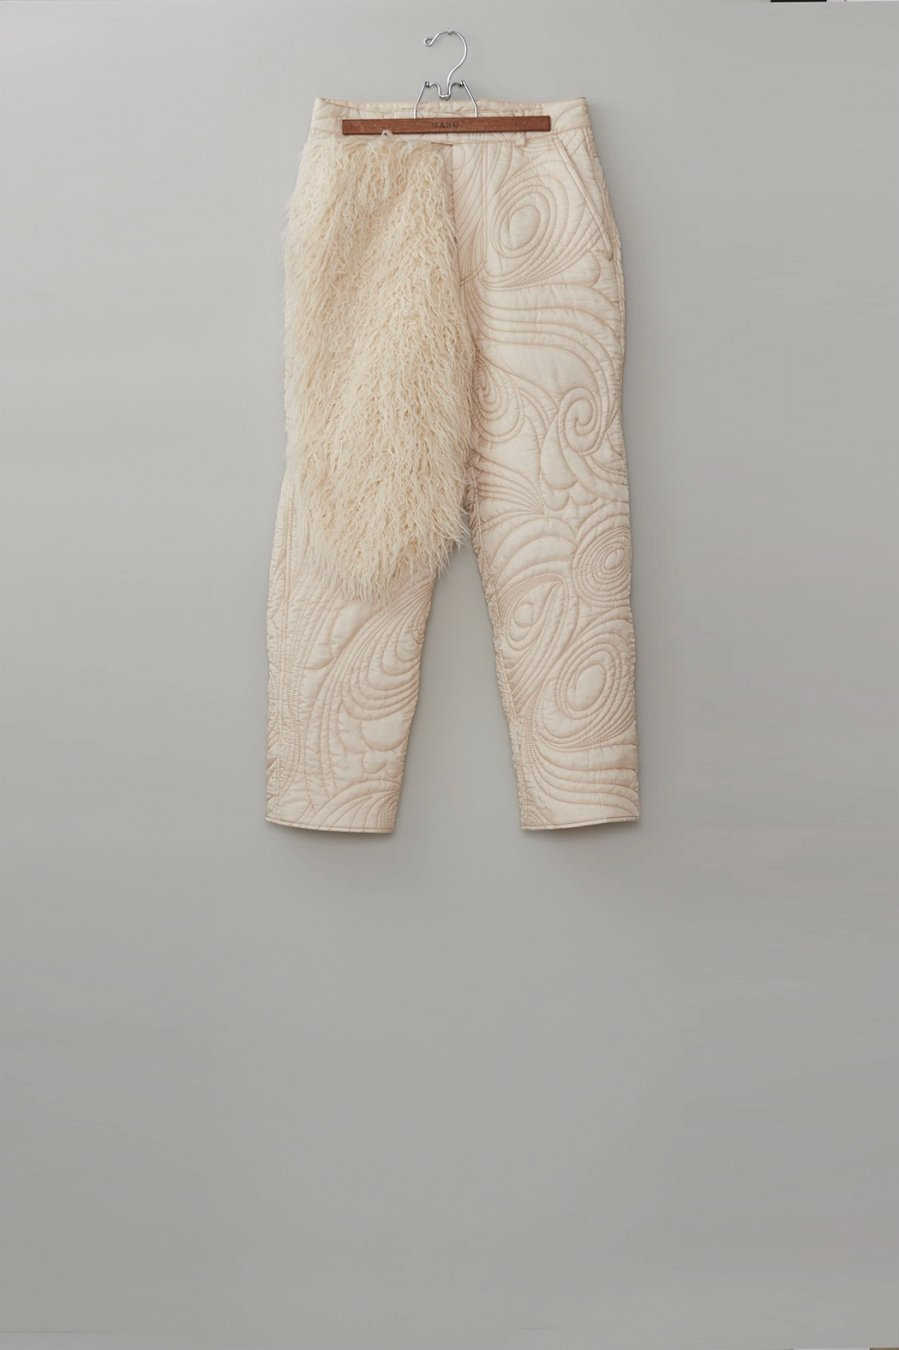 MASU  PSYCHEDELIC QUILTING TROUSERS(CHAMPAGNE)<img class='new_mark_img2' src='https://img.shop-pro.jp/img/new/icons15.gif' style='border:none;display:inline;margin:0px;padding:0px;width:auto;' />